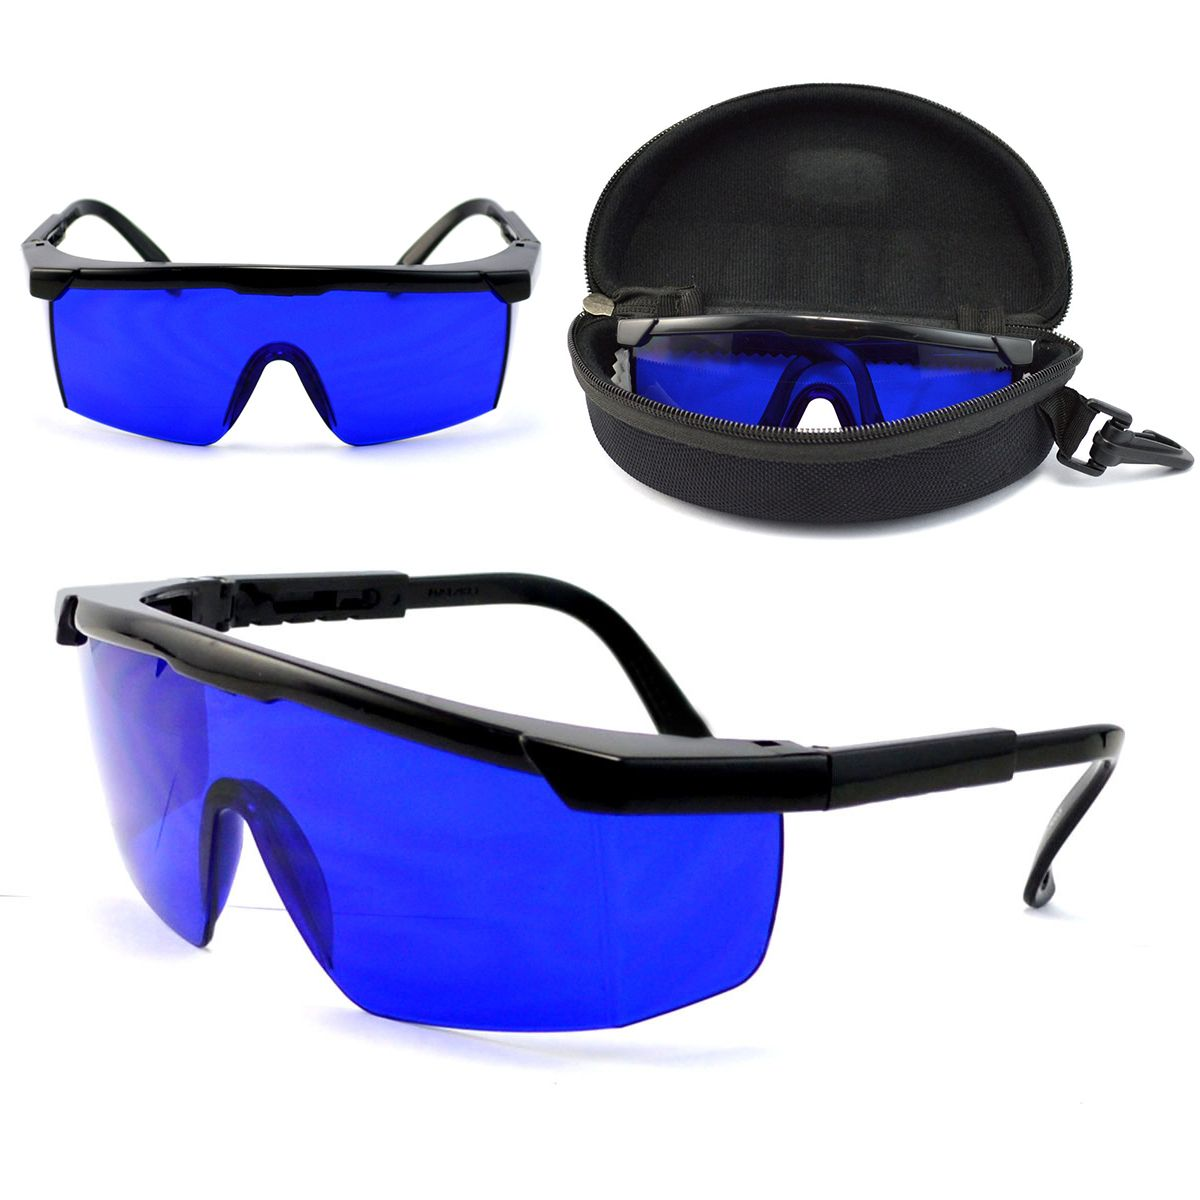 Mayitr <font><b>Professional</b></font> Golf Ball Finder Glasses Eye Protection Golf Accessories Blue Lenses Sport Glasses With Box